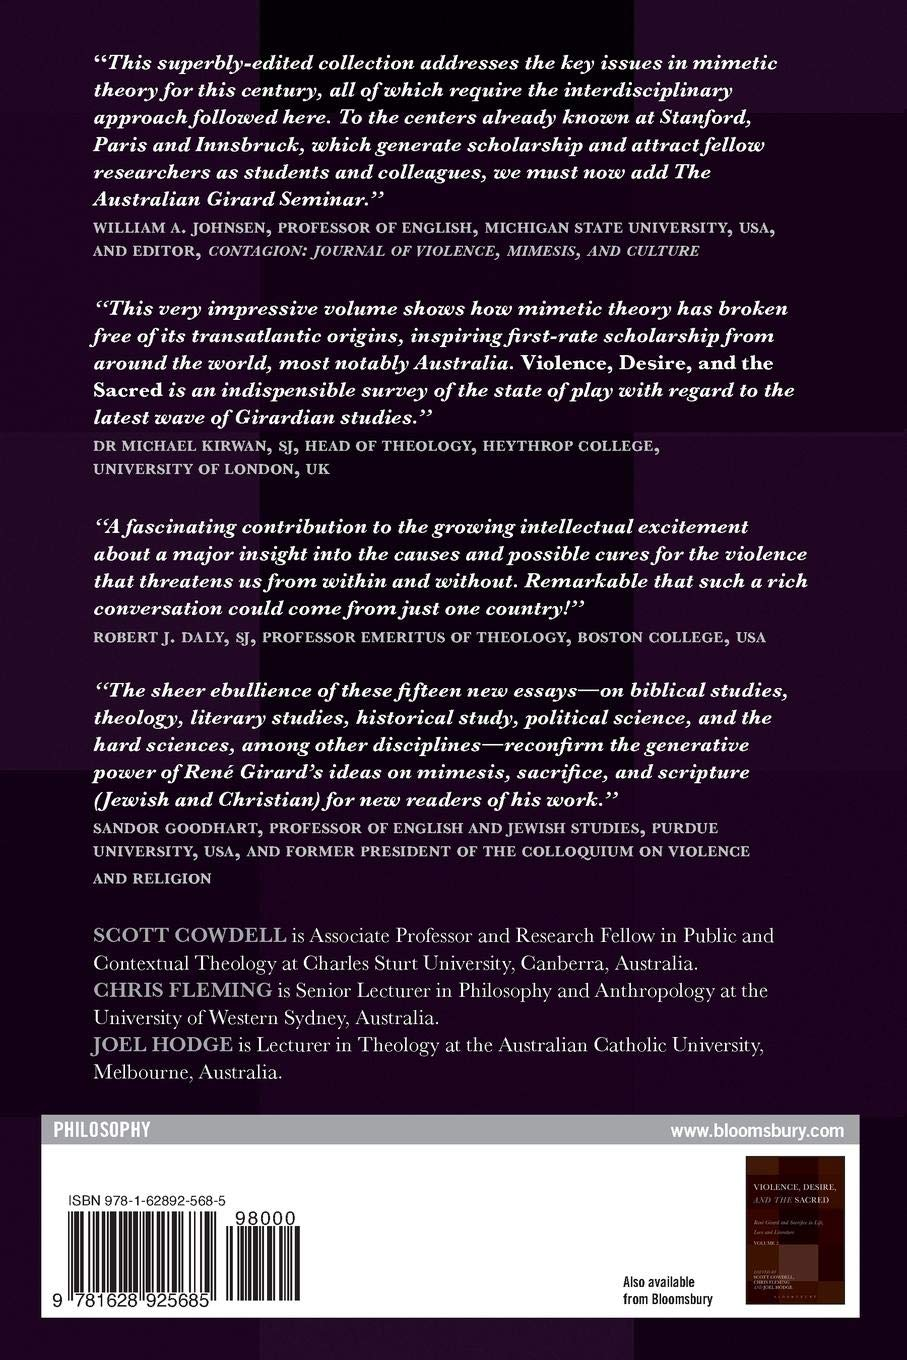 Violence, Desire, and the Sacred, Volume 1: Girard's Mimetic Theory Across  the Disciplines: Scott Cowdell, Chris Fleming, Joel Hodge: 9781628925685:  ...